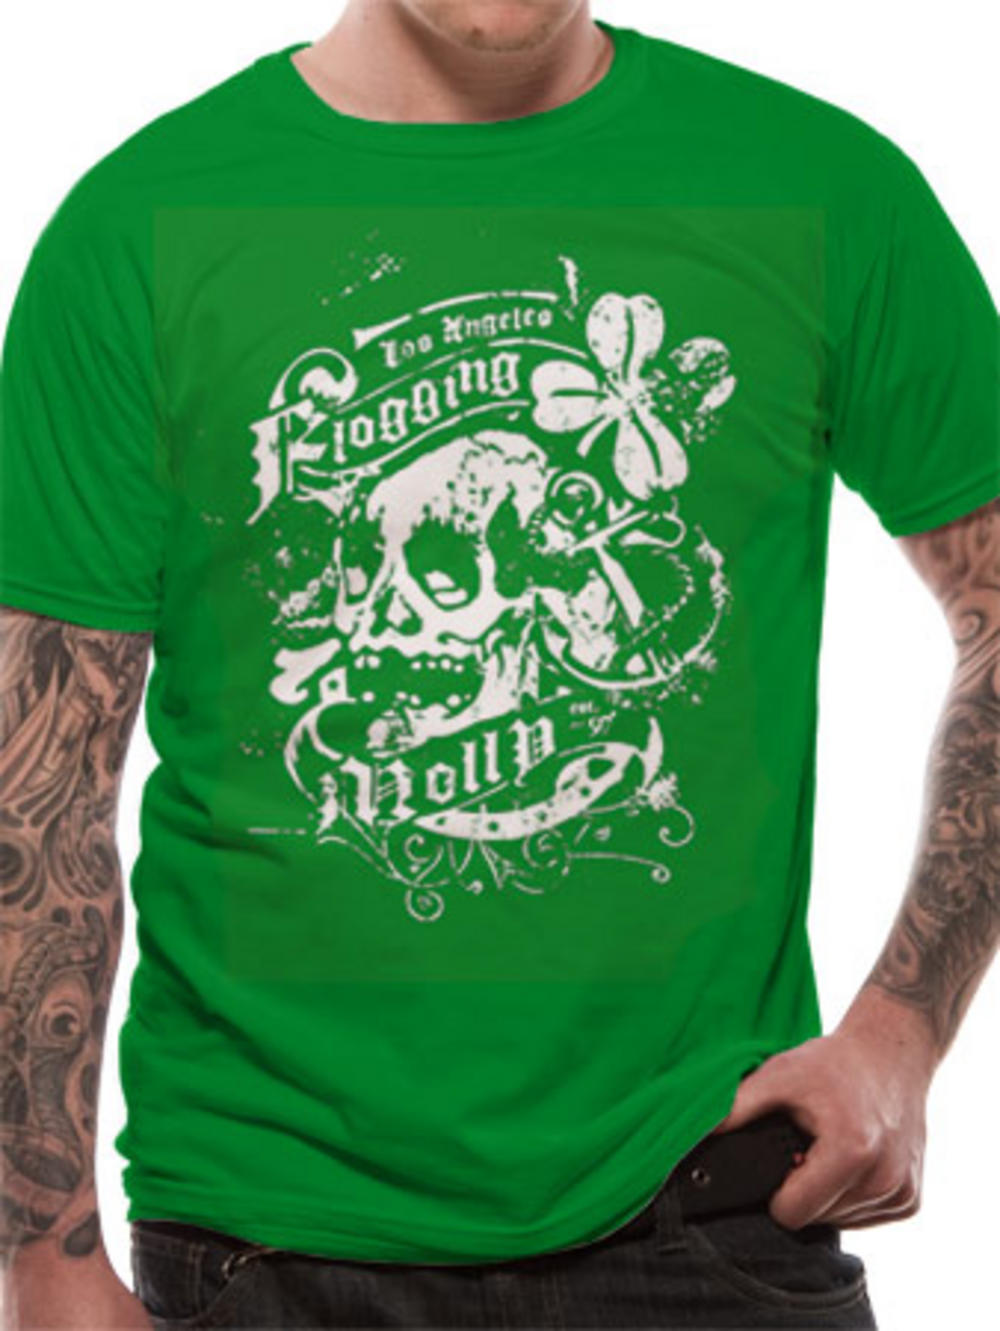 Flogging Molly (Green Shamrock) T-shirt. Buy Flogging Molly (Green